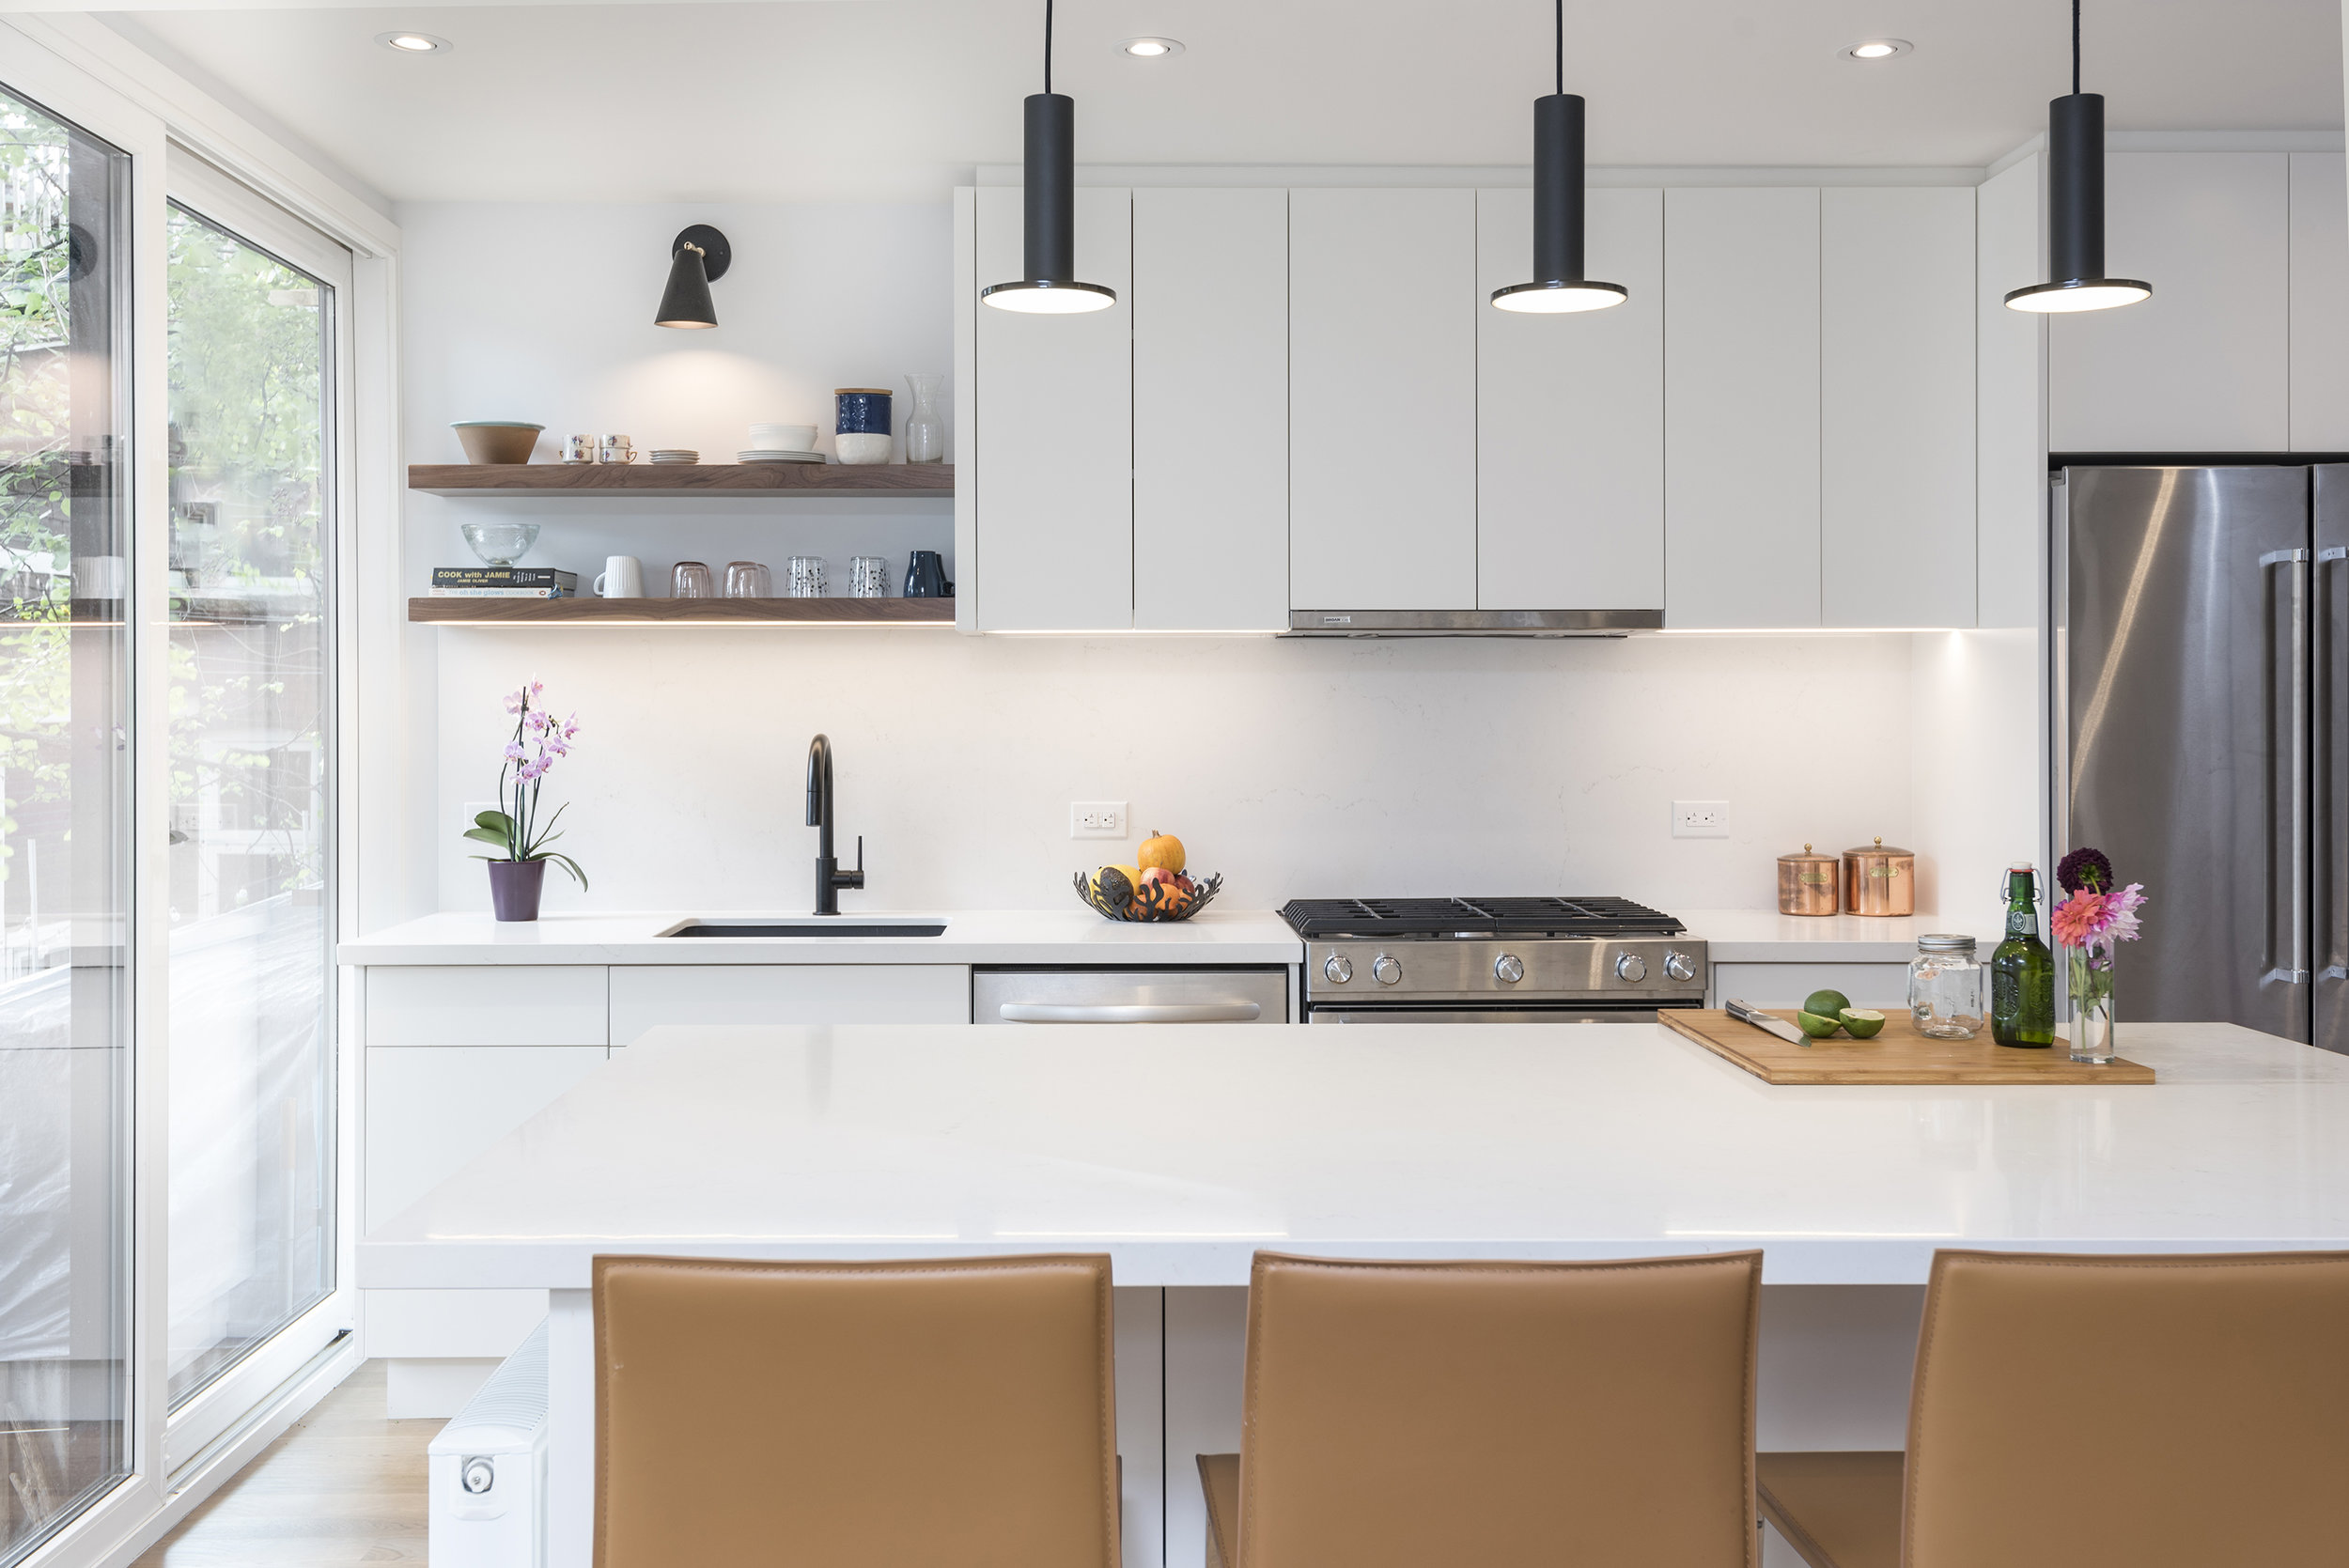 Relocated kitchen with direct access to exterior deck has a simple and elegant aesthetic.